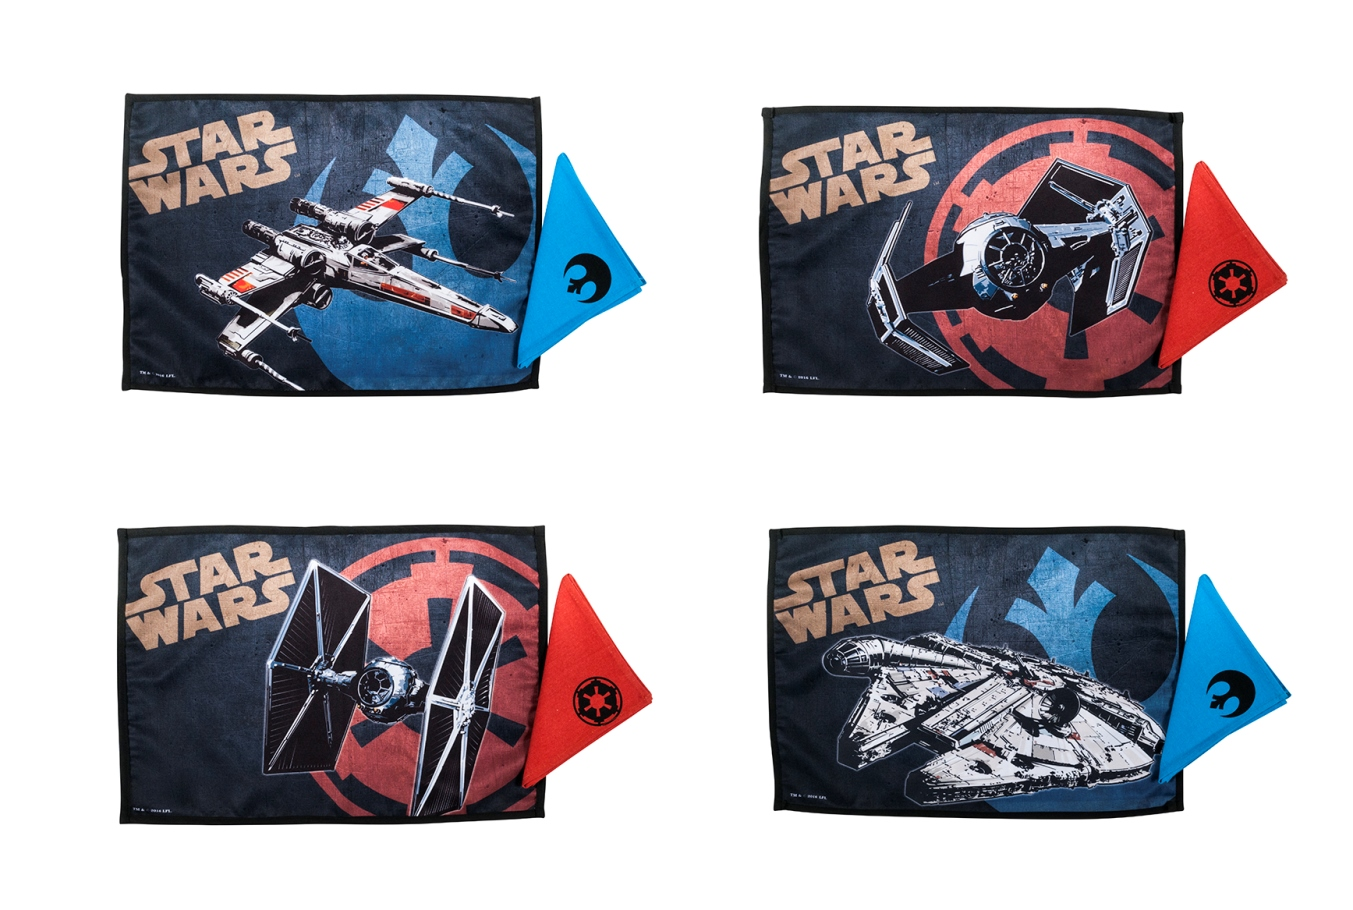 Star Wars - 4 Tovagliette e 4 Tovaglioli - 4 Placemats and 4 Napkins set